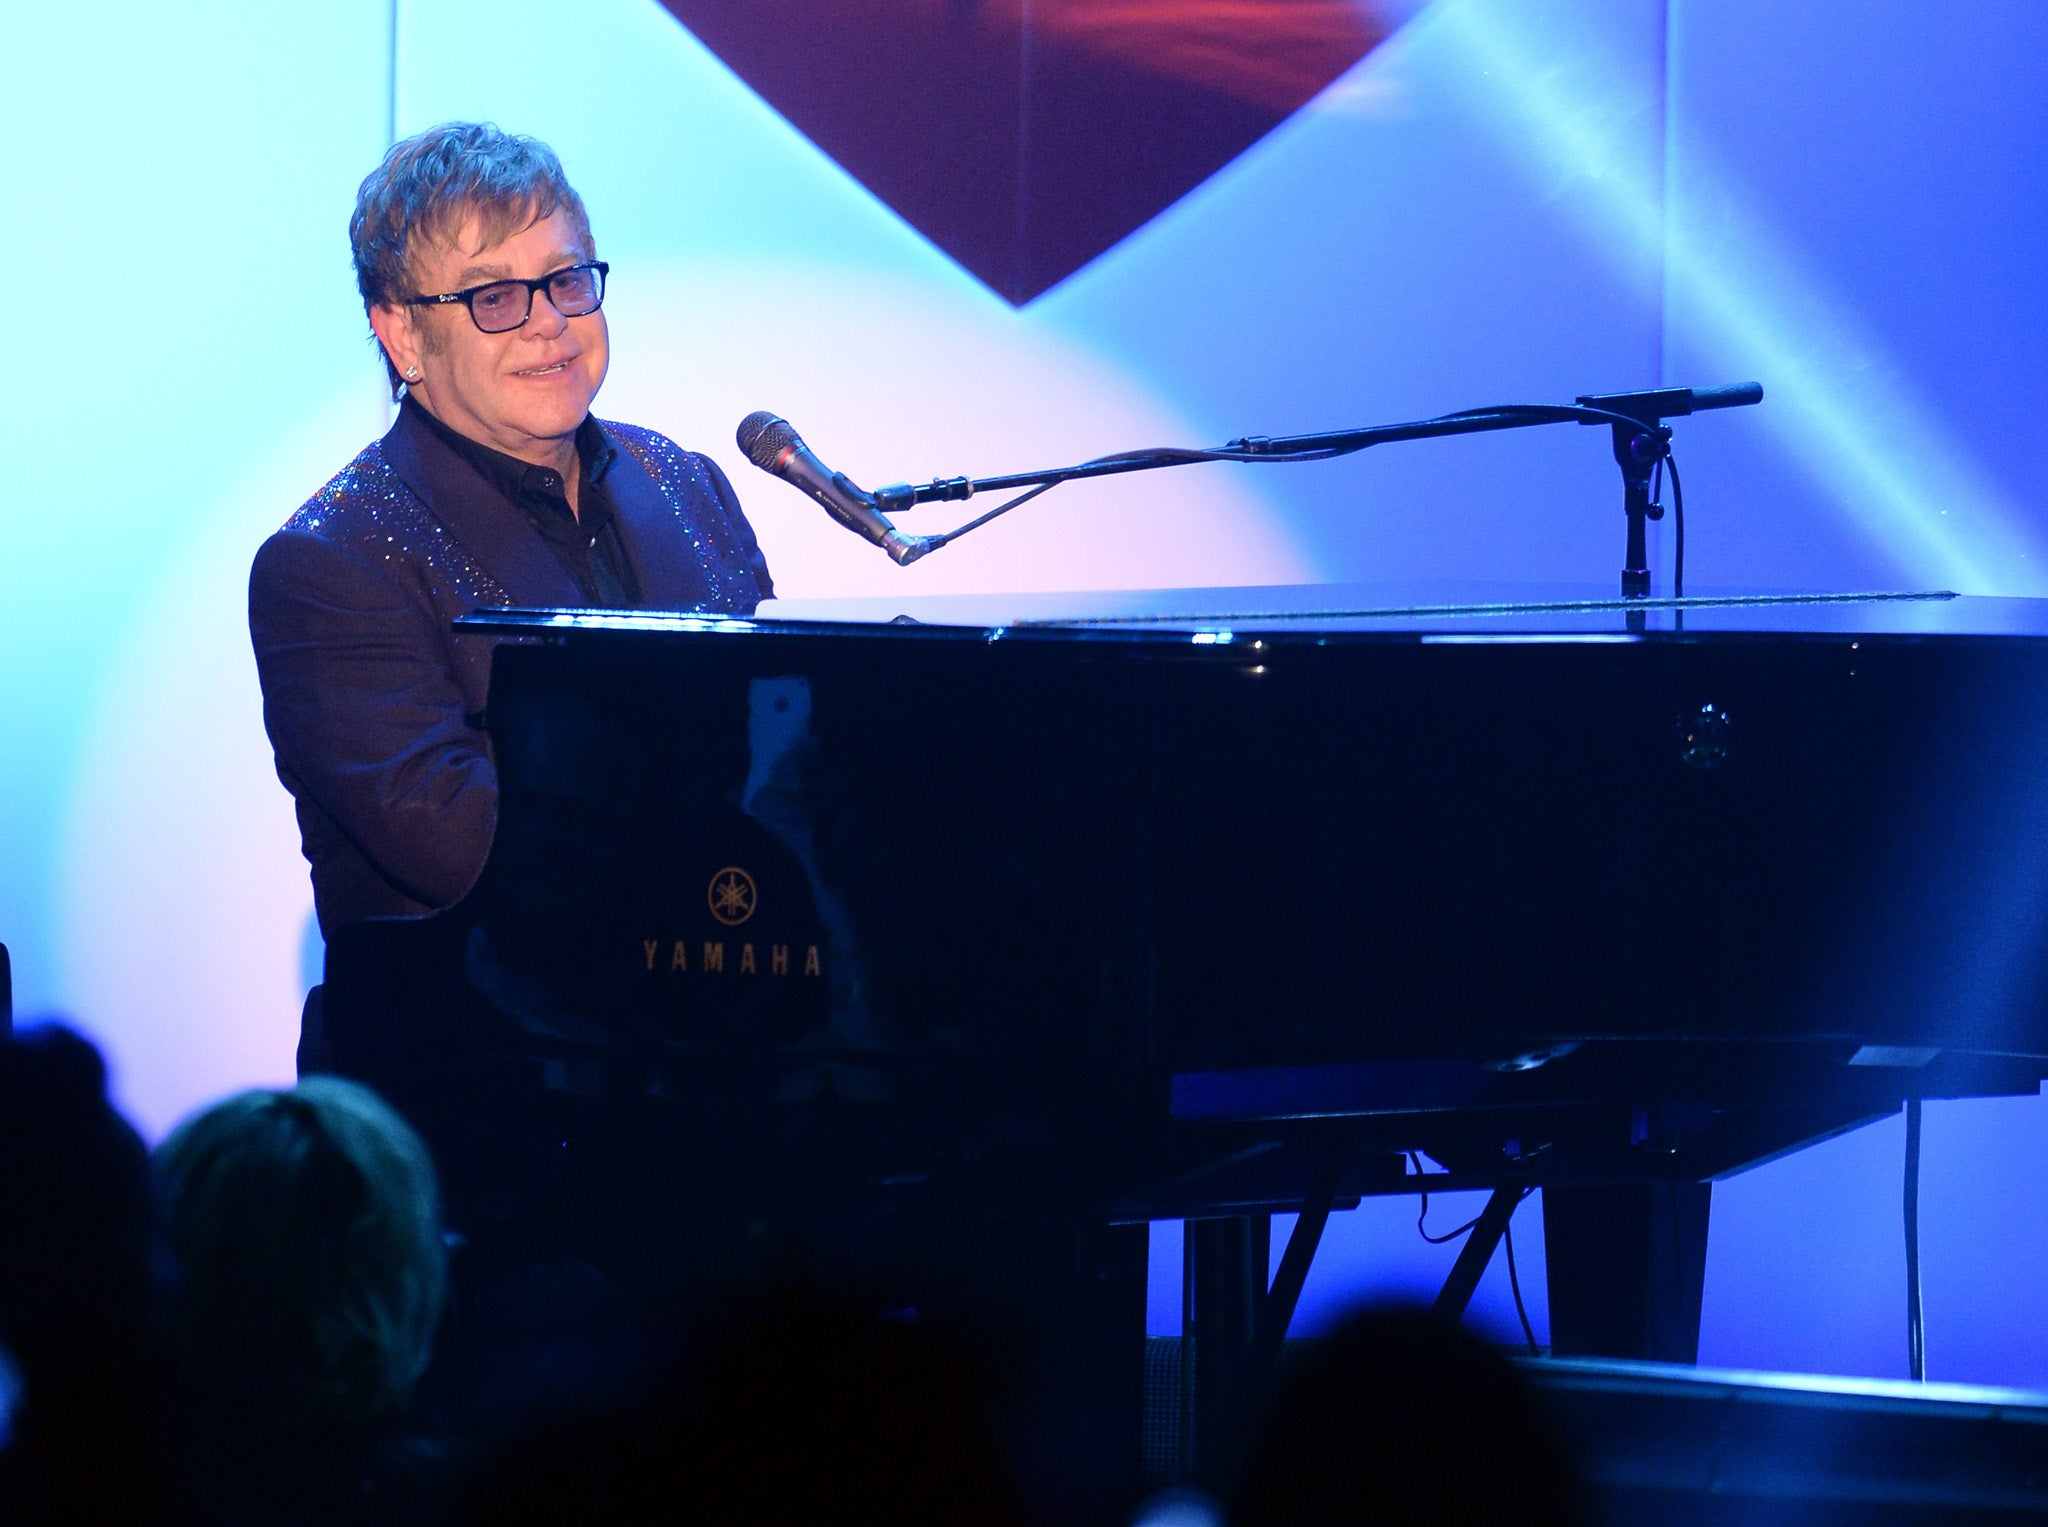 Sir Elton John Says He's 'lucky To Be Alive' After Appendicitis Health  Scare  The Independent